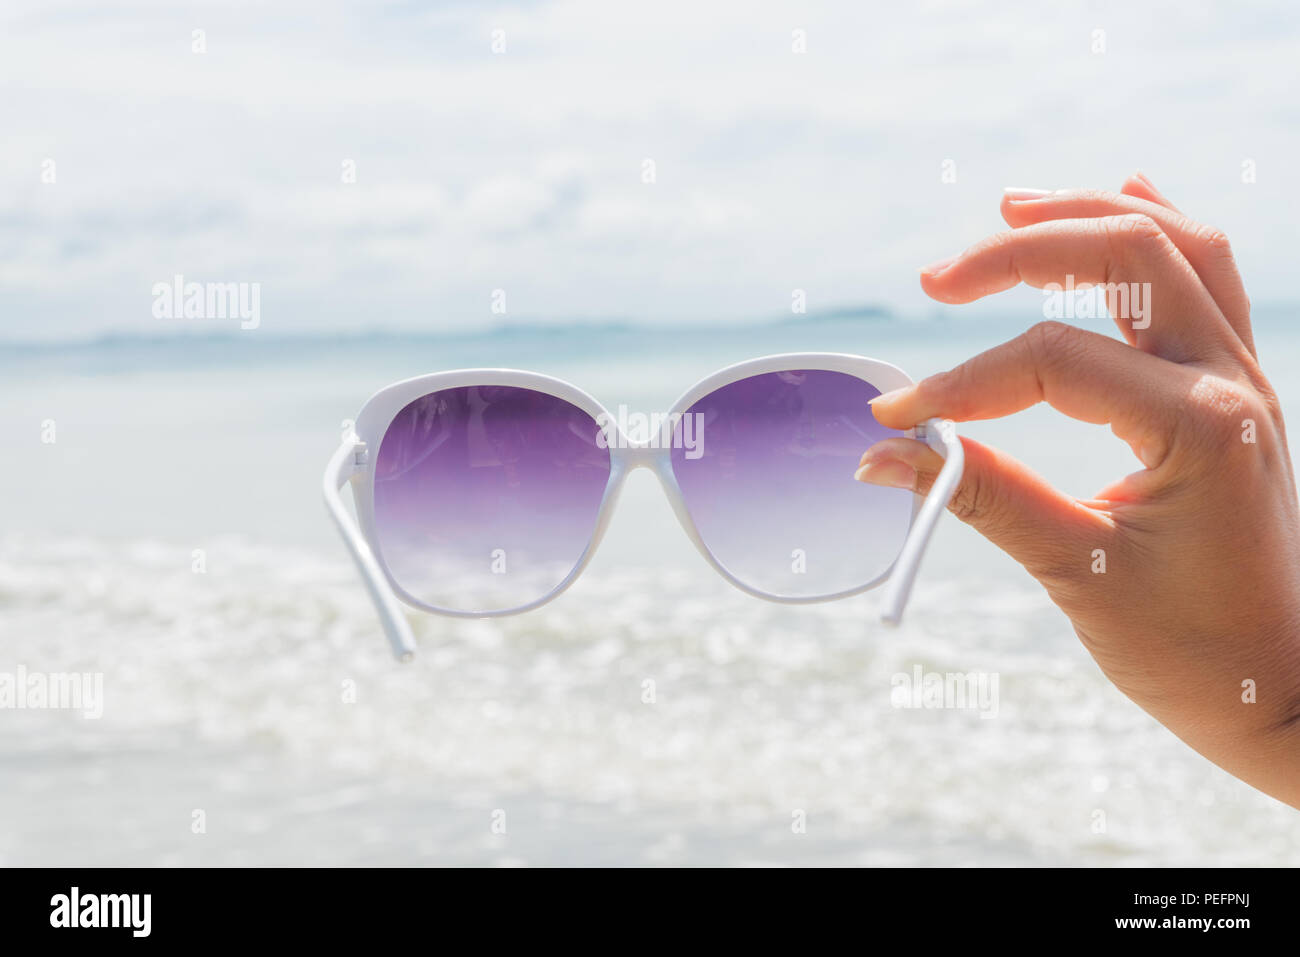 9f780f3bfbe woman hand holding sunglasses over sea and Sandy beach in background for  summer holiday and vacation concept.